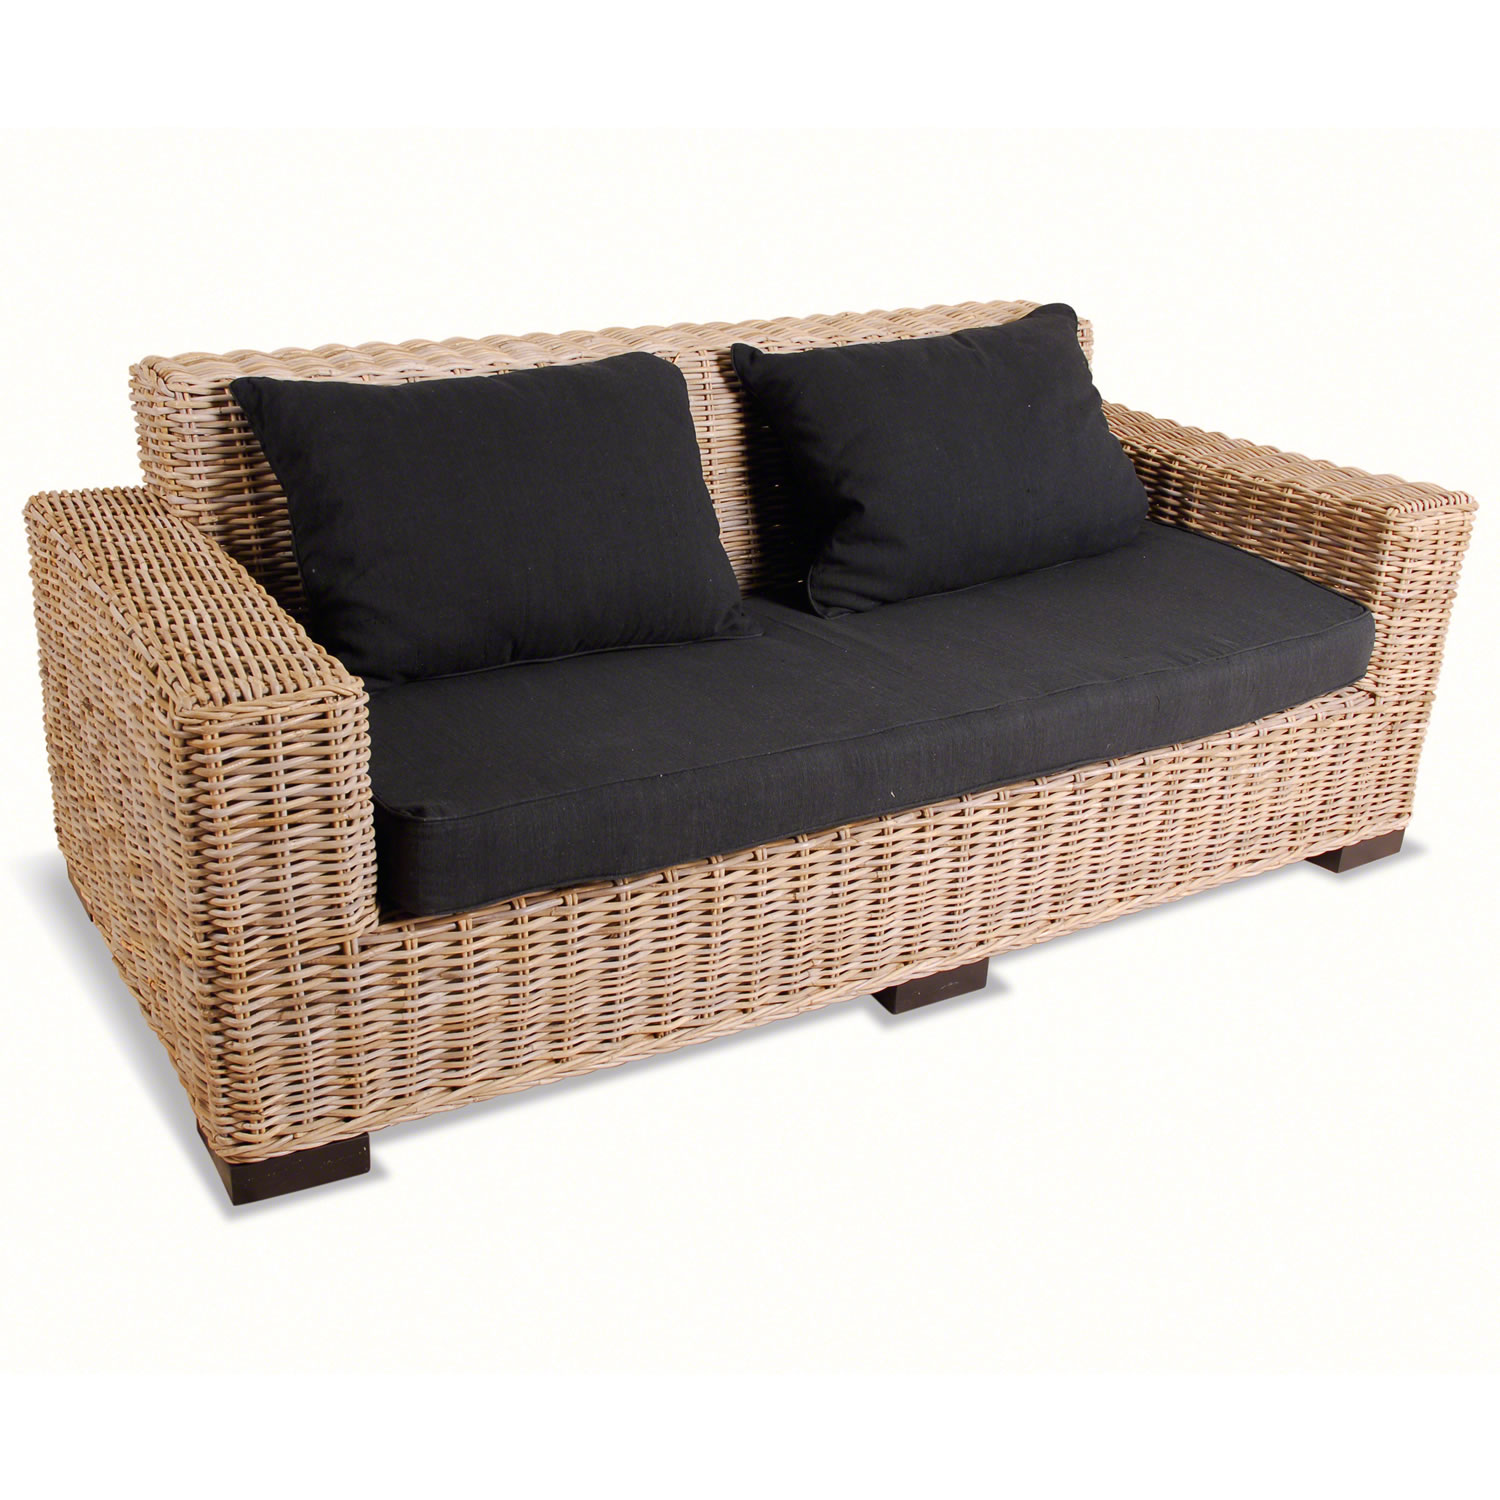 Rattan 2 Seater Sofa Decor IdeasDecor Ideas